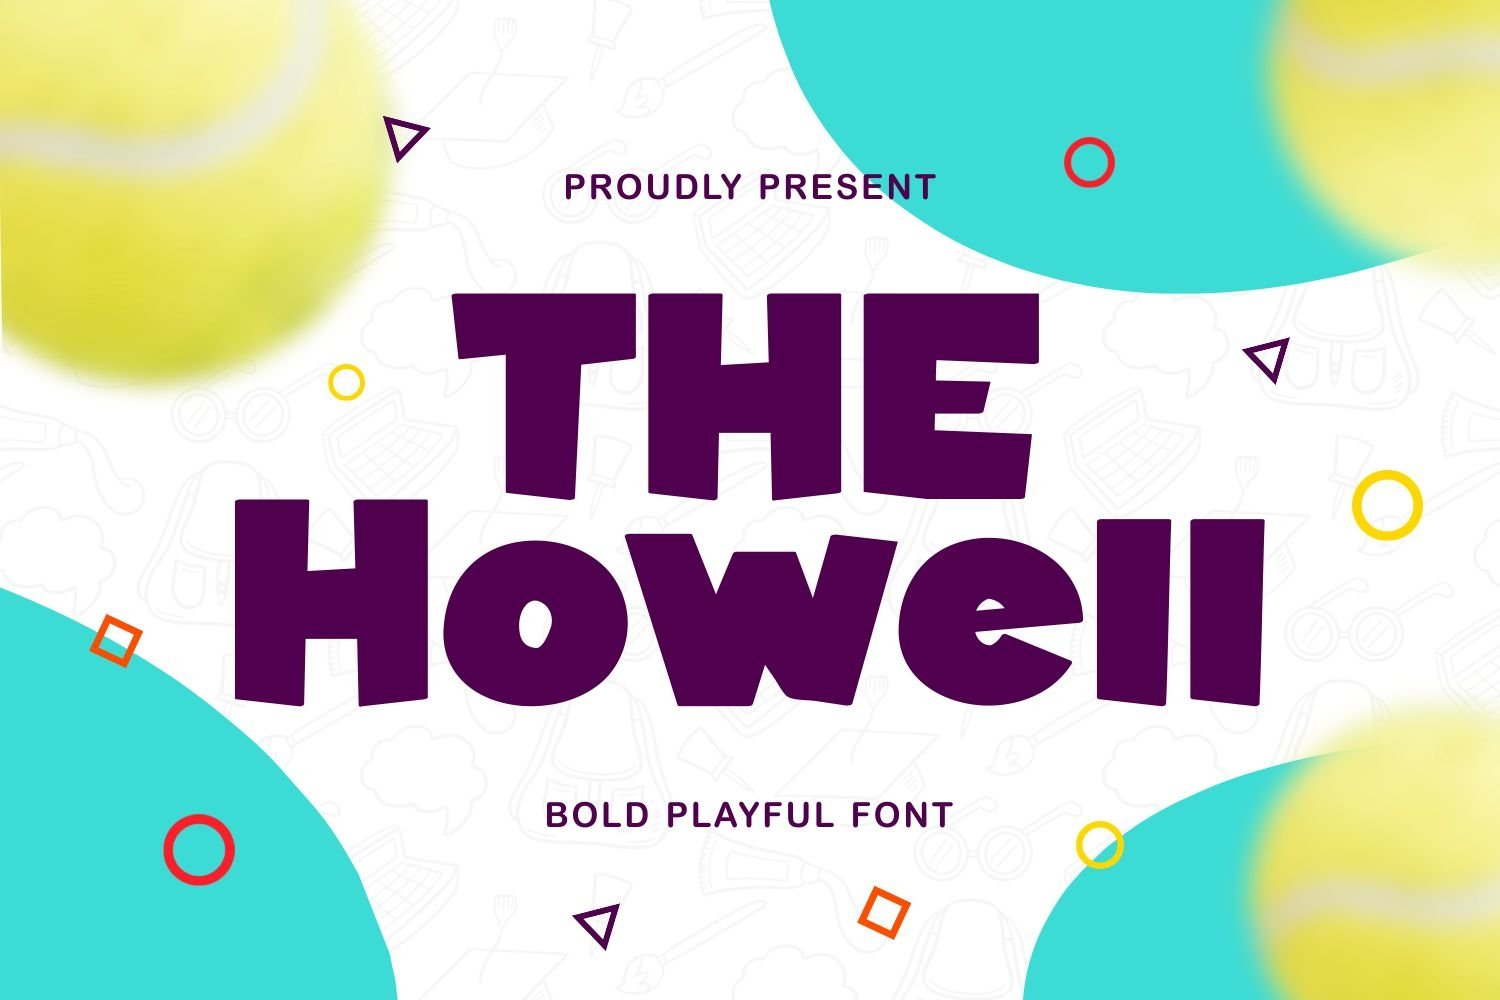 Howell - Bold Playful Font example image 1